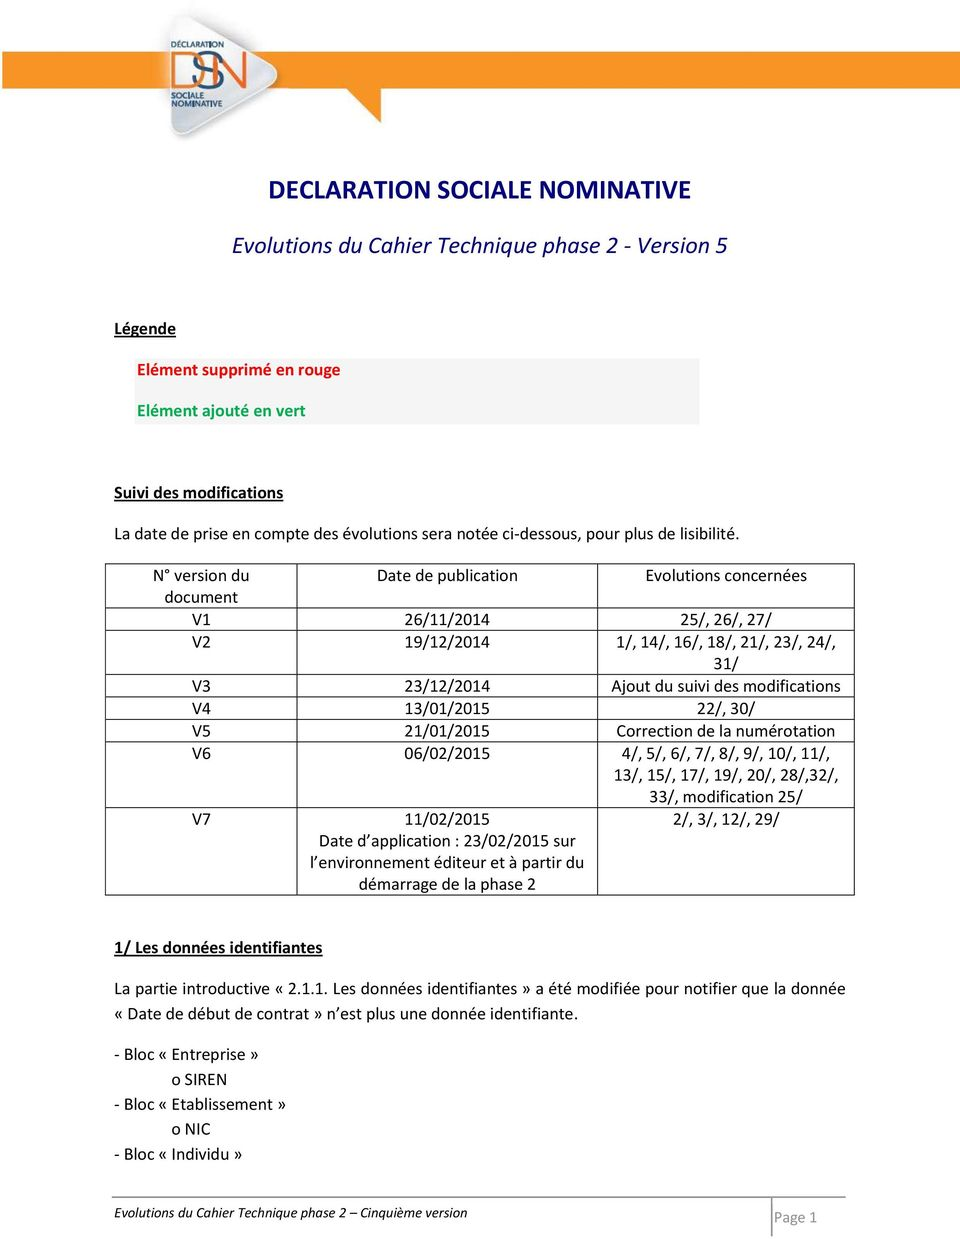 N version du Date de publication Evolutions concernées document V1 26/11/2014 25/, 26/, 27/ V2 19/12/2014 1/, 14/, 16/, 18/, 21/, 23/, 24/, 31/ V3 23/12/2014 Ajout du suivi des modifications V4